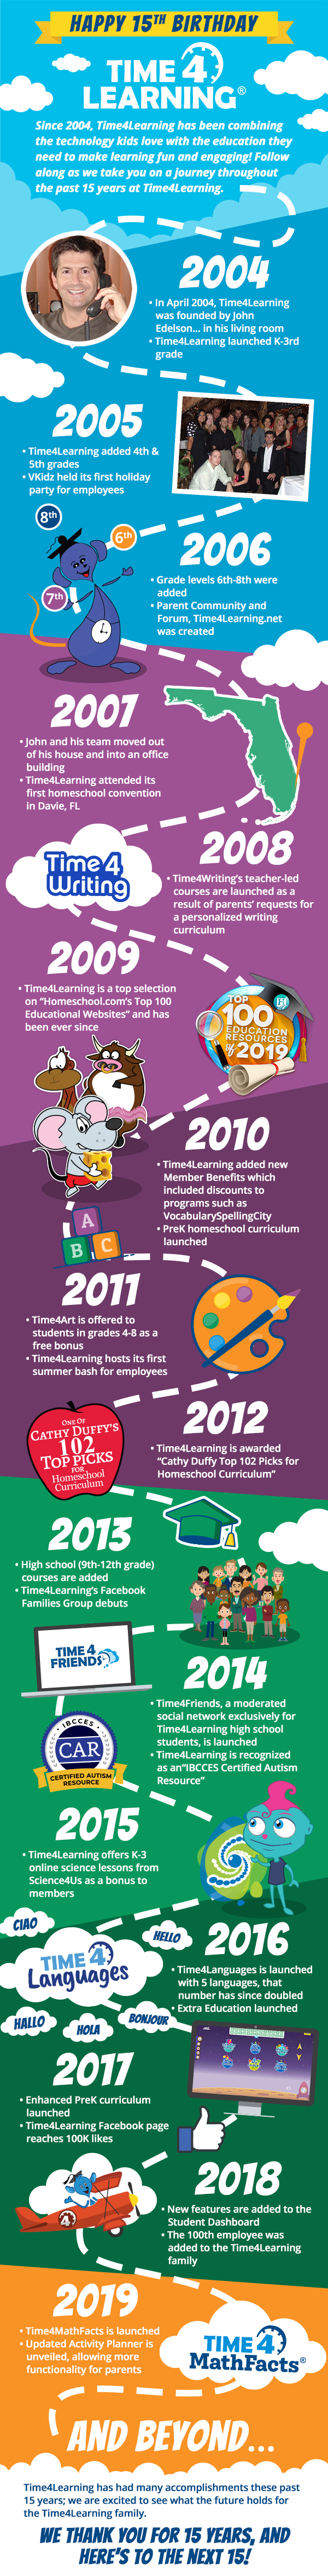 Time4Learning's 15th Anniversary Infographic